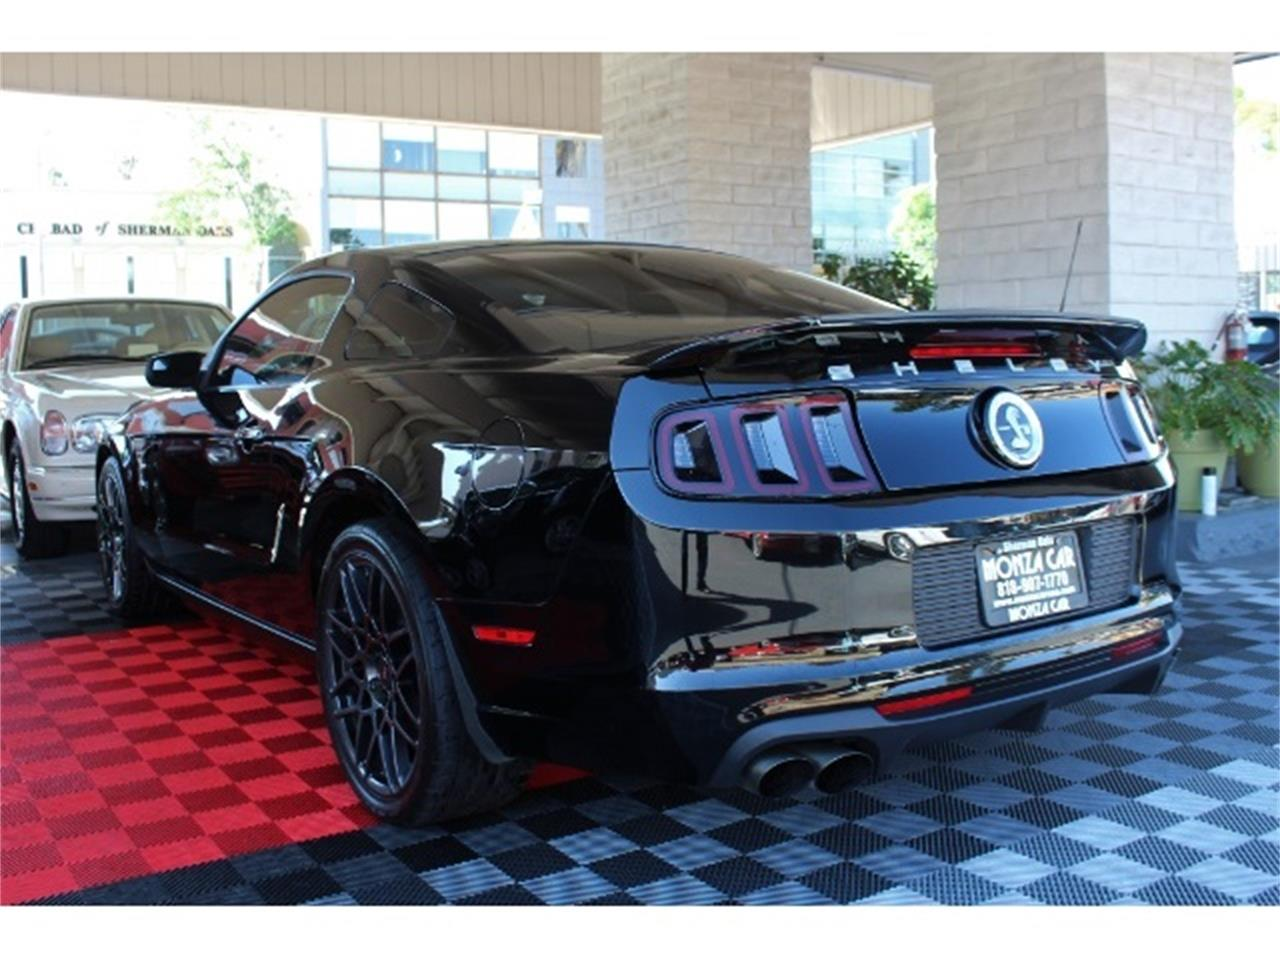 For Sale: 2013 Ford Mustang Shelby GT500 in Sherman Oaks, California